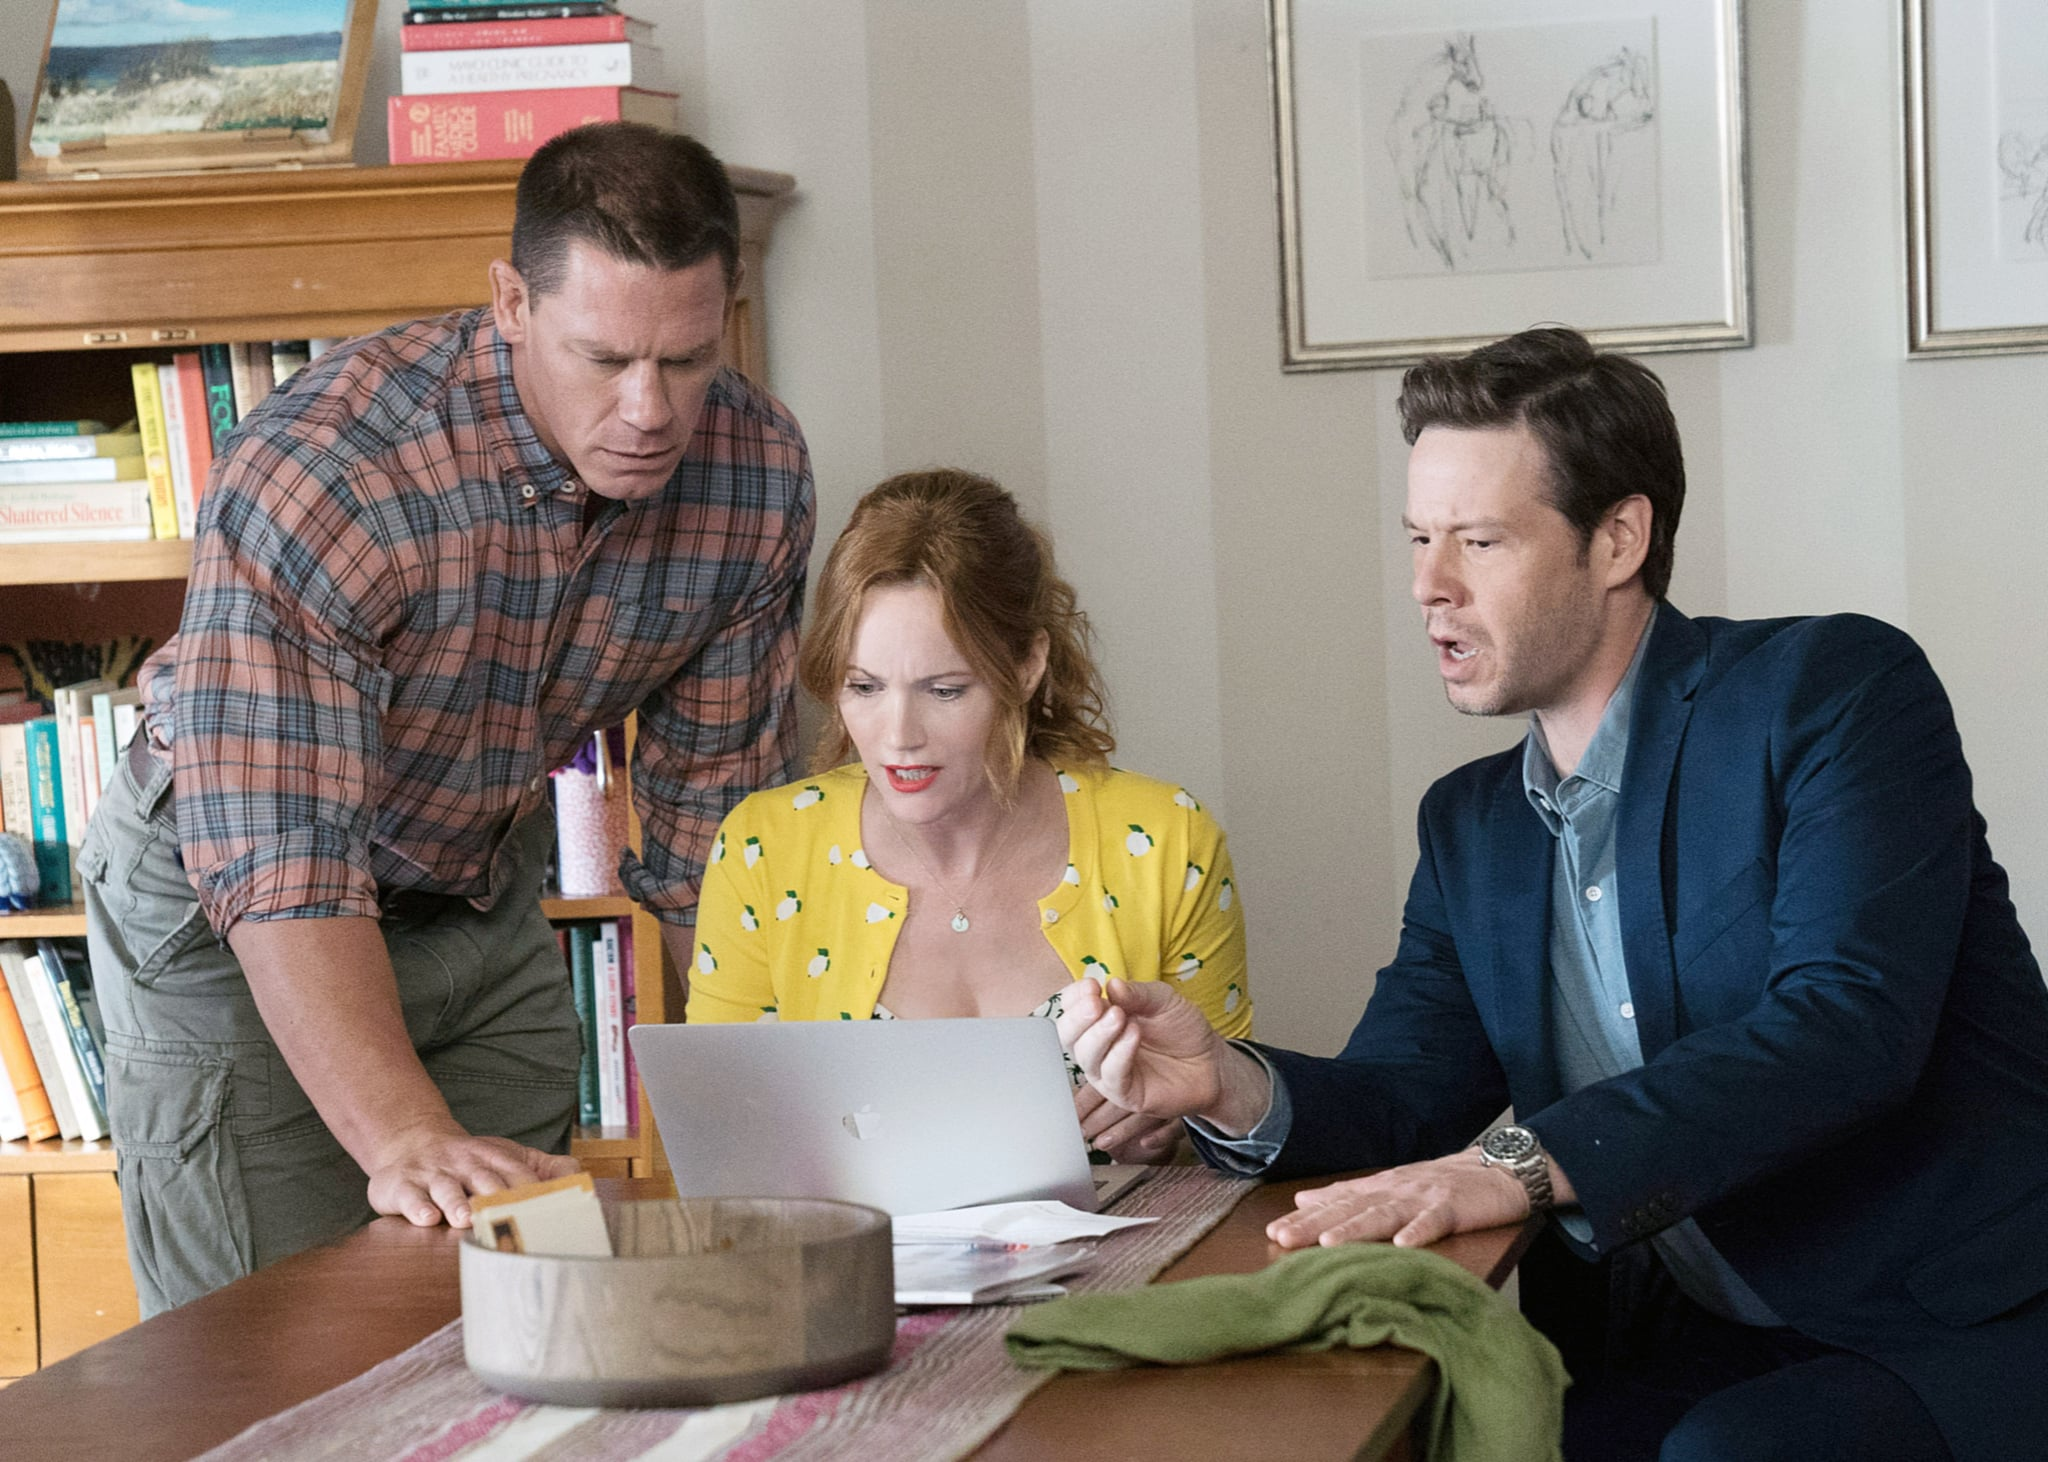 BLOCKERS, from left: John Cena, Leslie Mann, Ike Barinholtz, 2018. ph: Quantrell D. Colbert / Universal Pictures /Courtesy Everett Collection